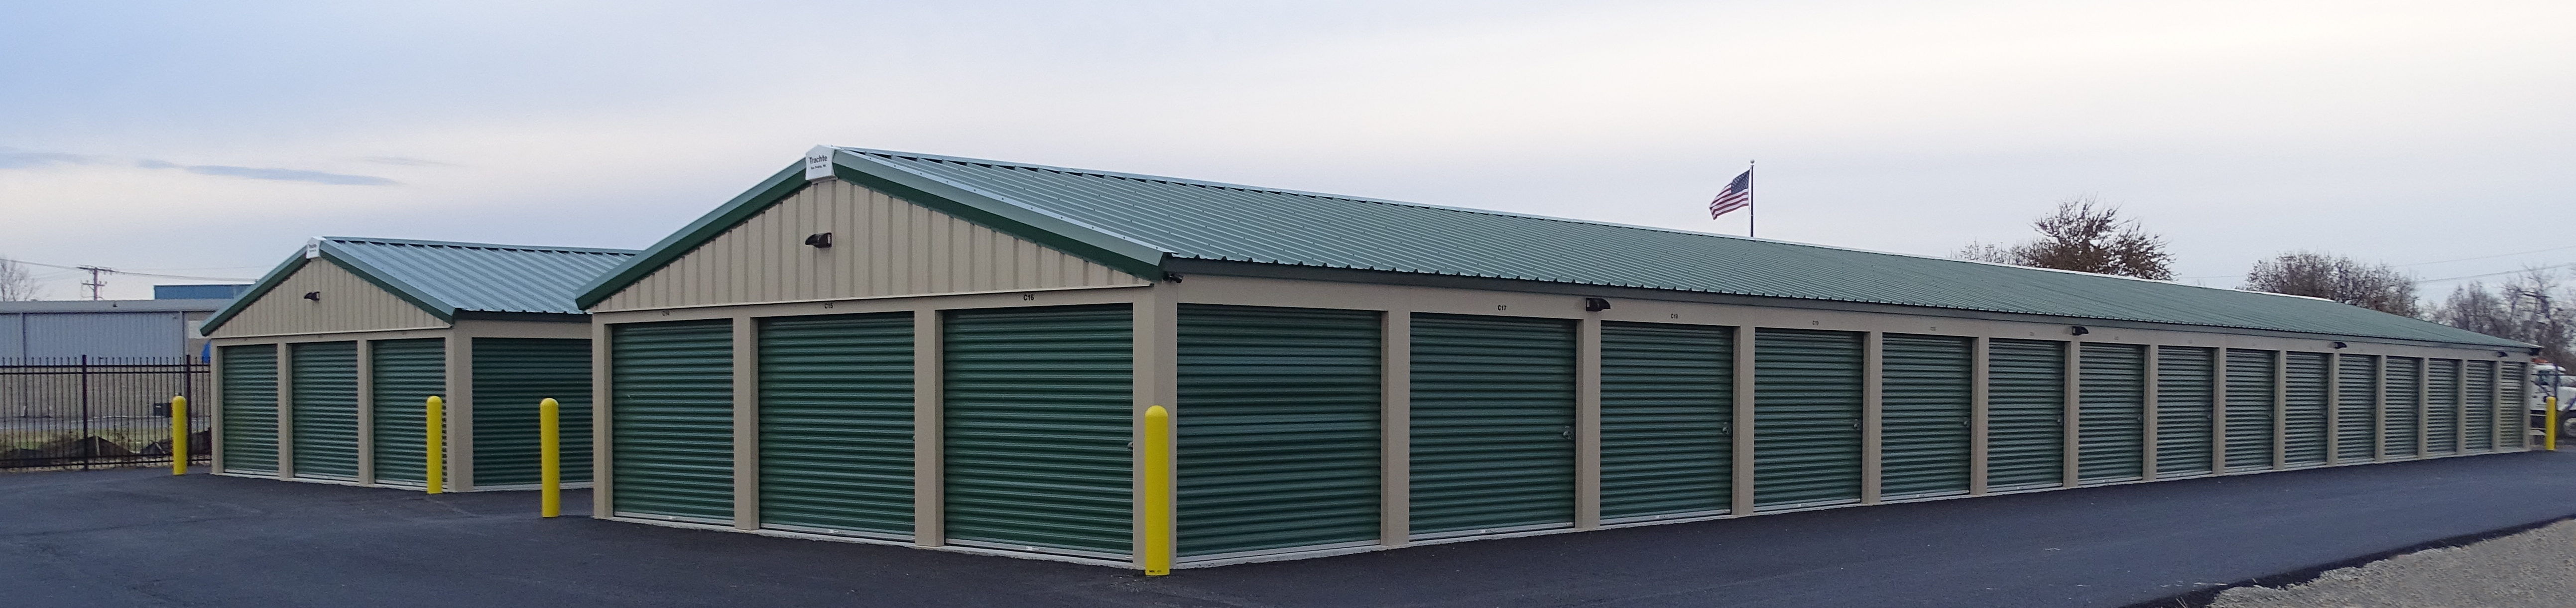 Outdoor Storage with Convenient Drive Up Access